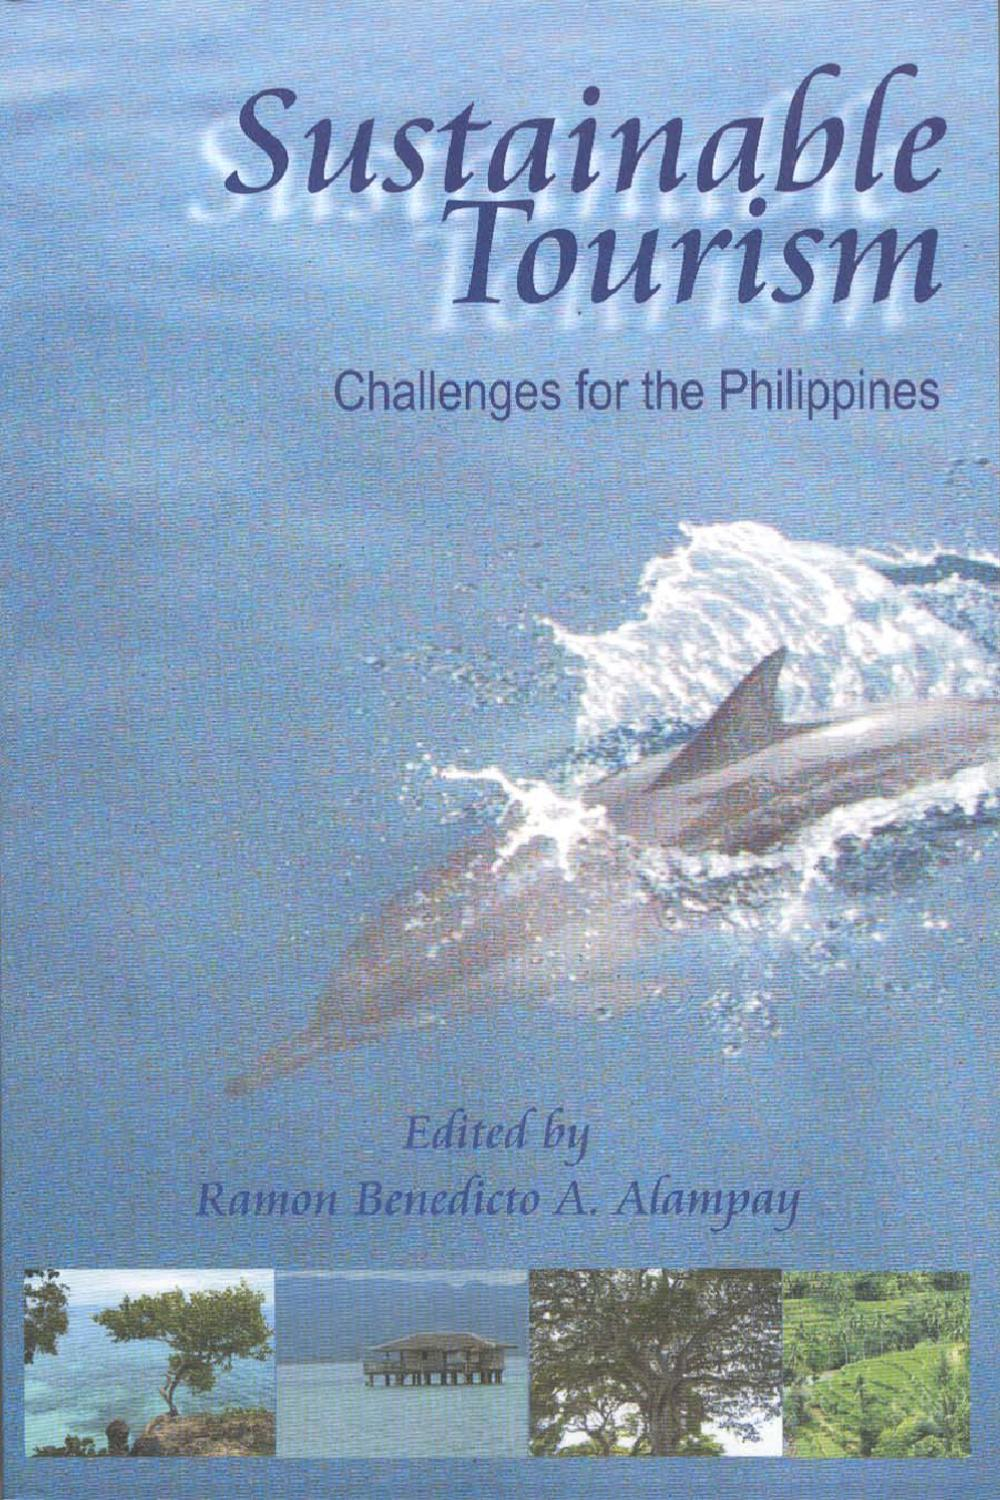 thesis on tourism industry The purpose of this thesis is to find out whether vietnamese tourism industry is suitable as an economic growth engine in the 21 st century the current state, strength and weaknesses of her.